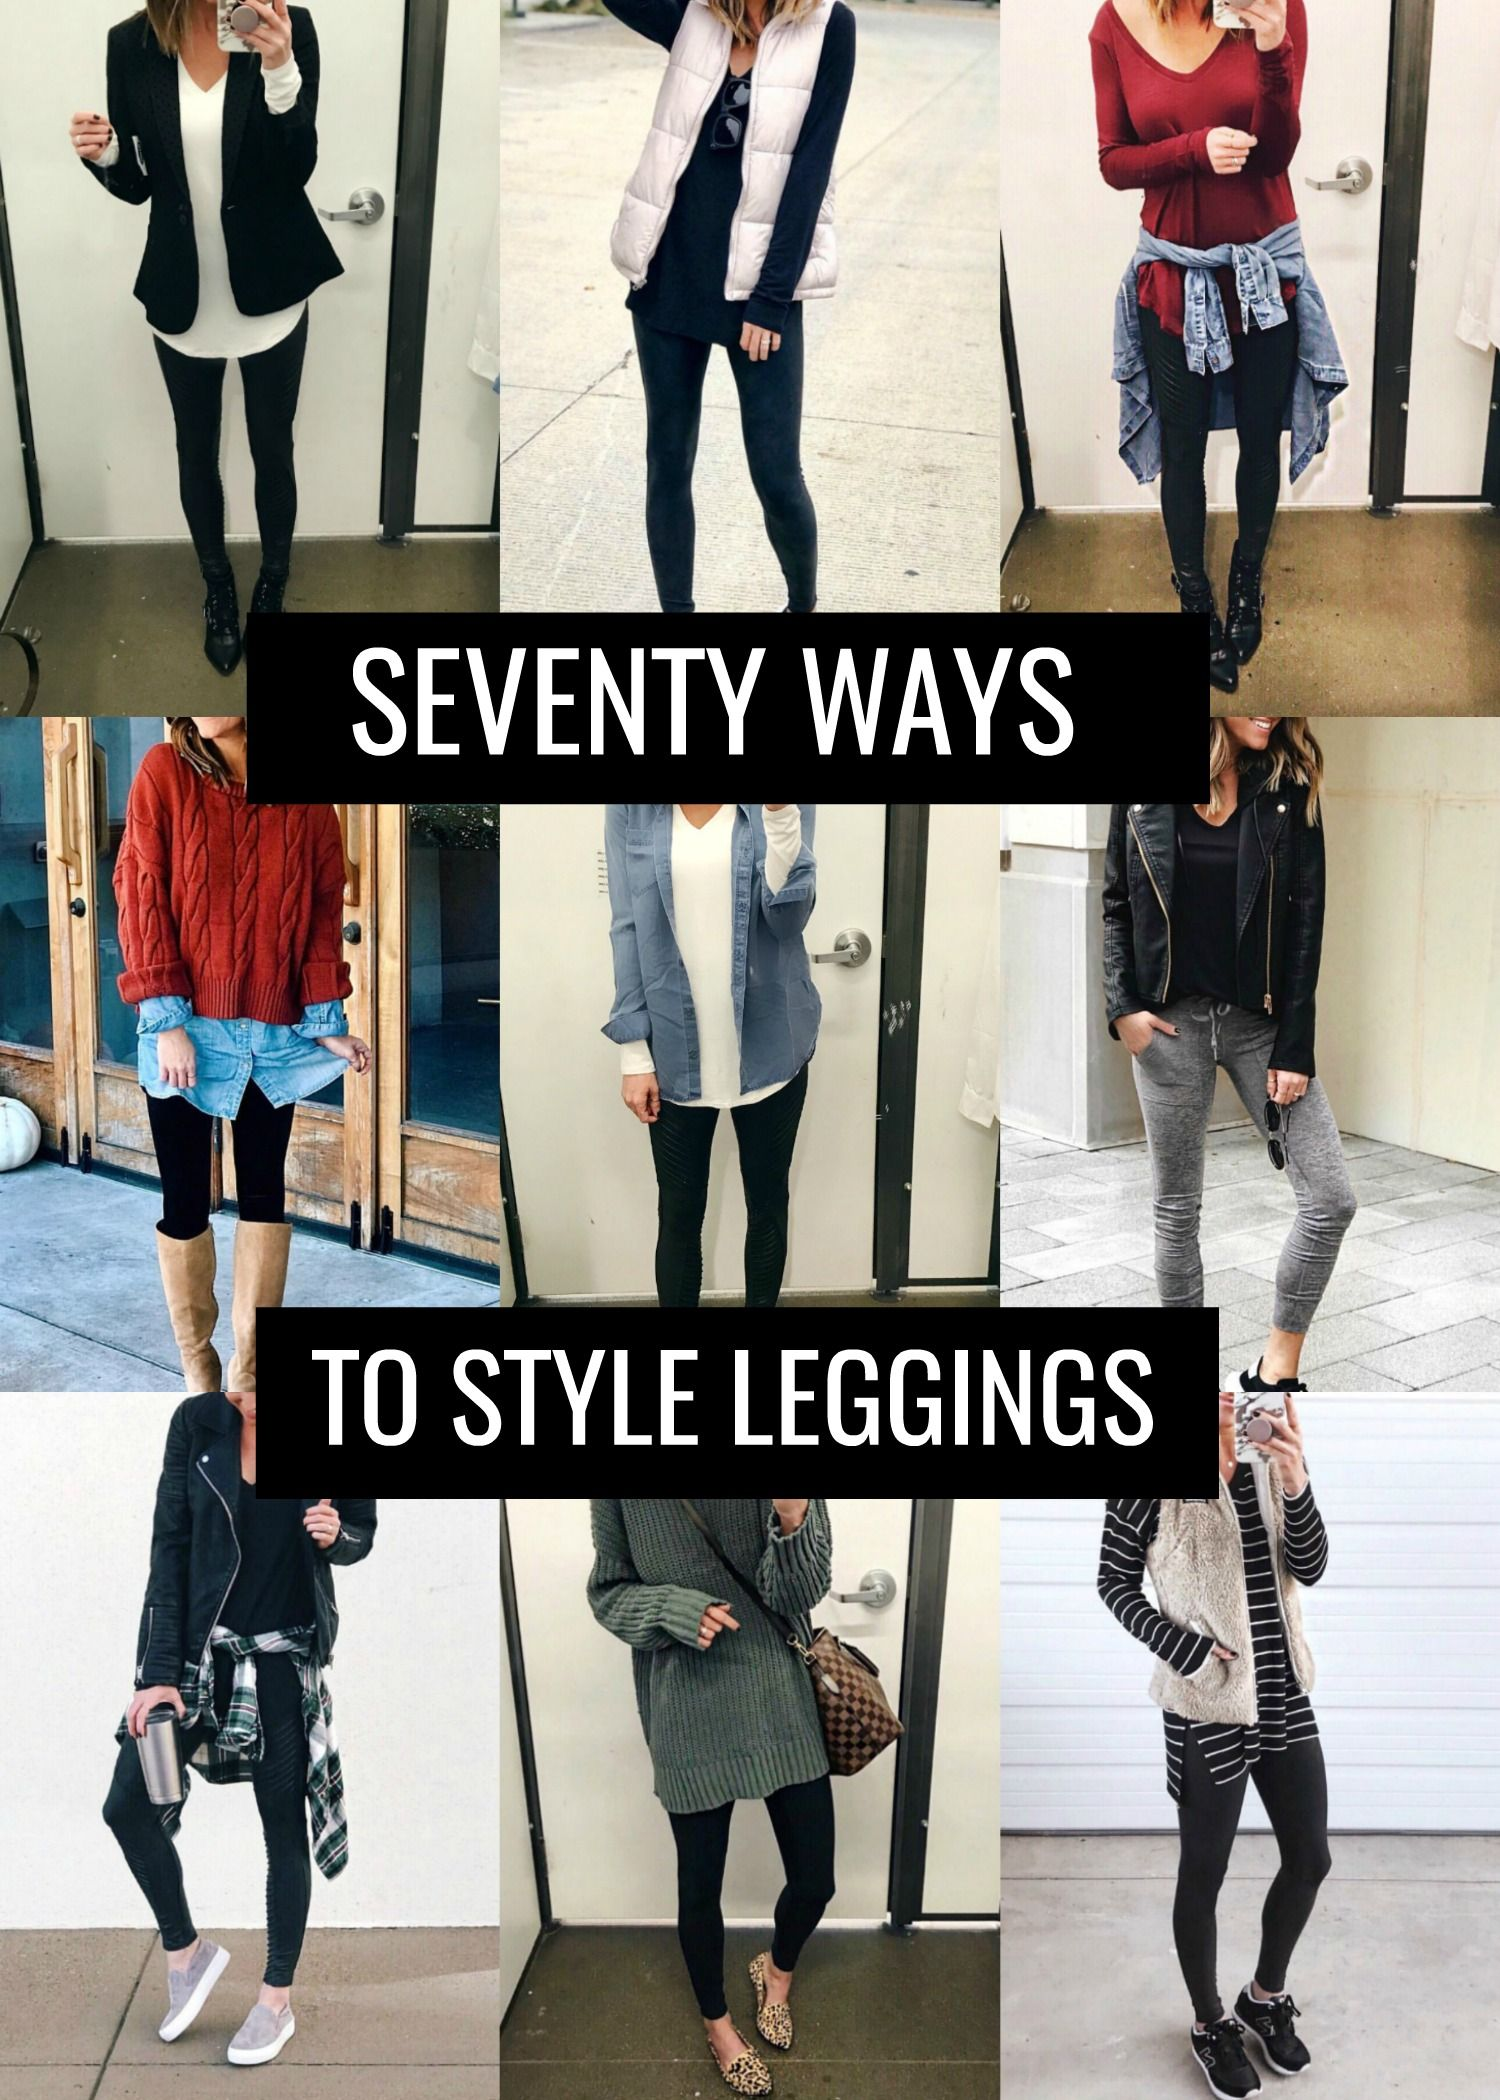 c0d7b24f2a9 Awesome Ways To Style Leggings Great Outfit Ideas  springoutfits   springstyle  styleinspiration  springfashion